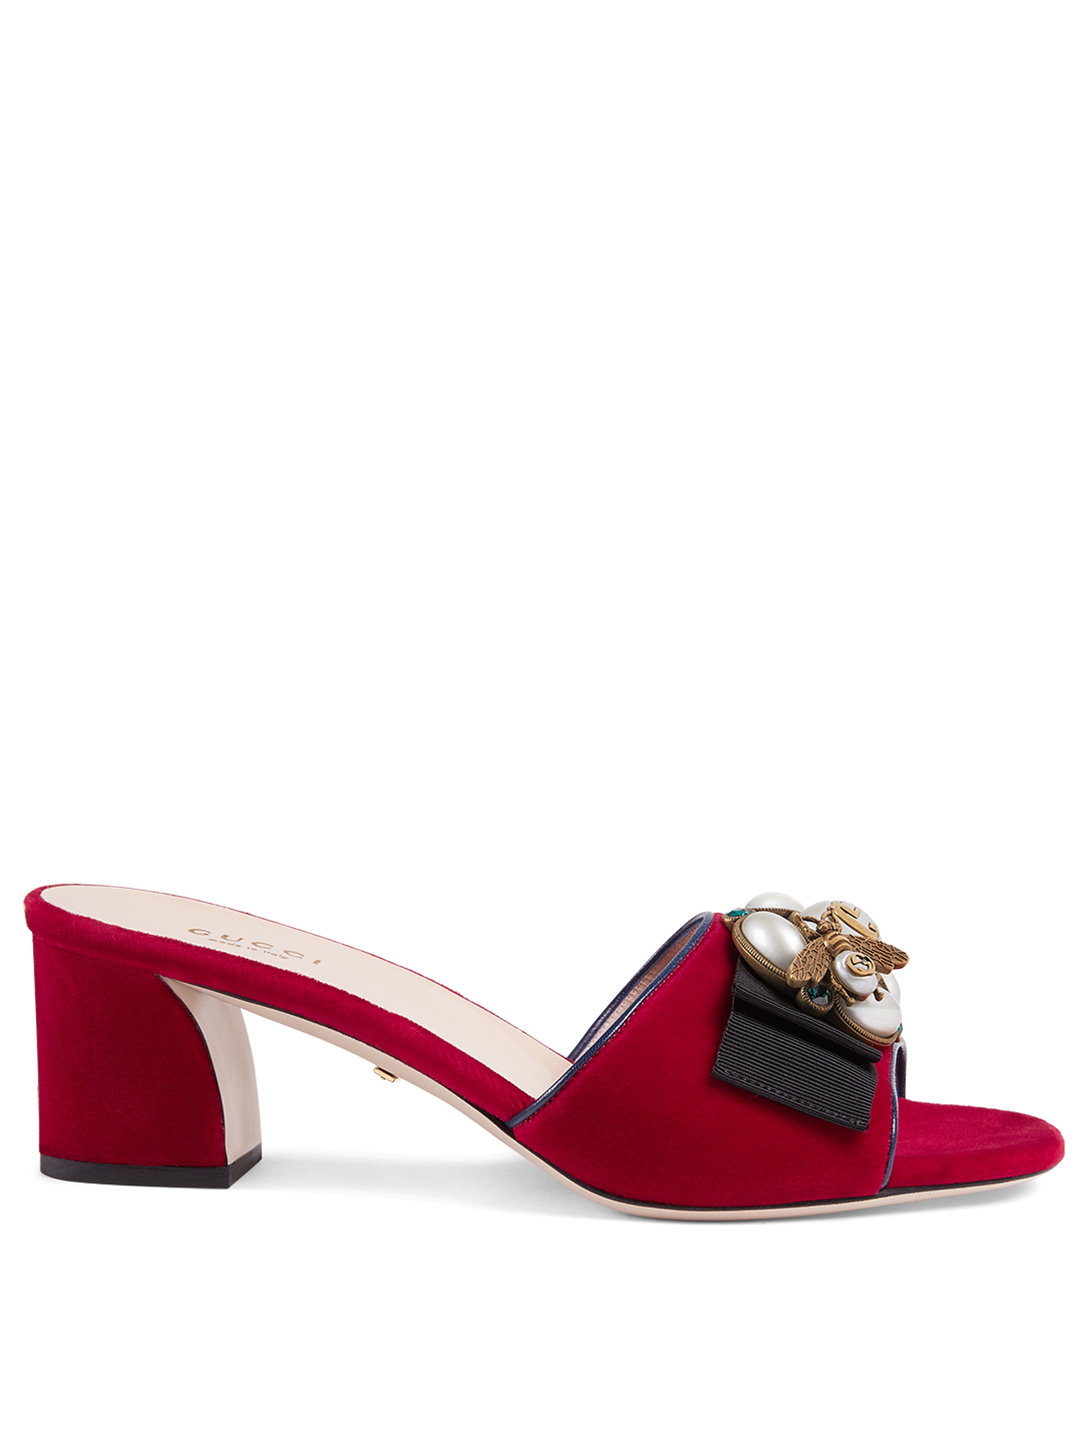 GUCCI Étoile Velvet Sandals With Bee Detail Designers Red